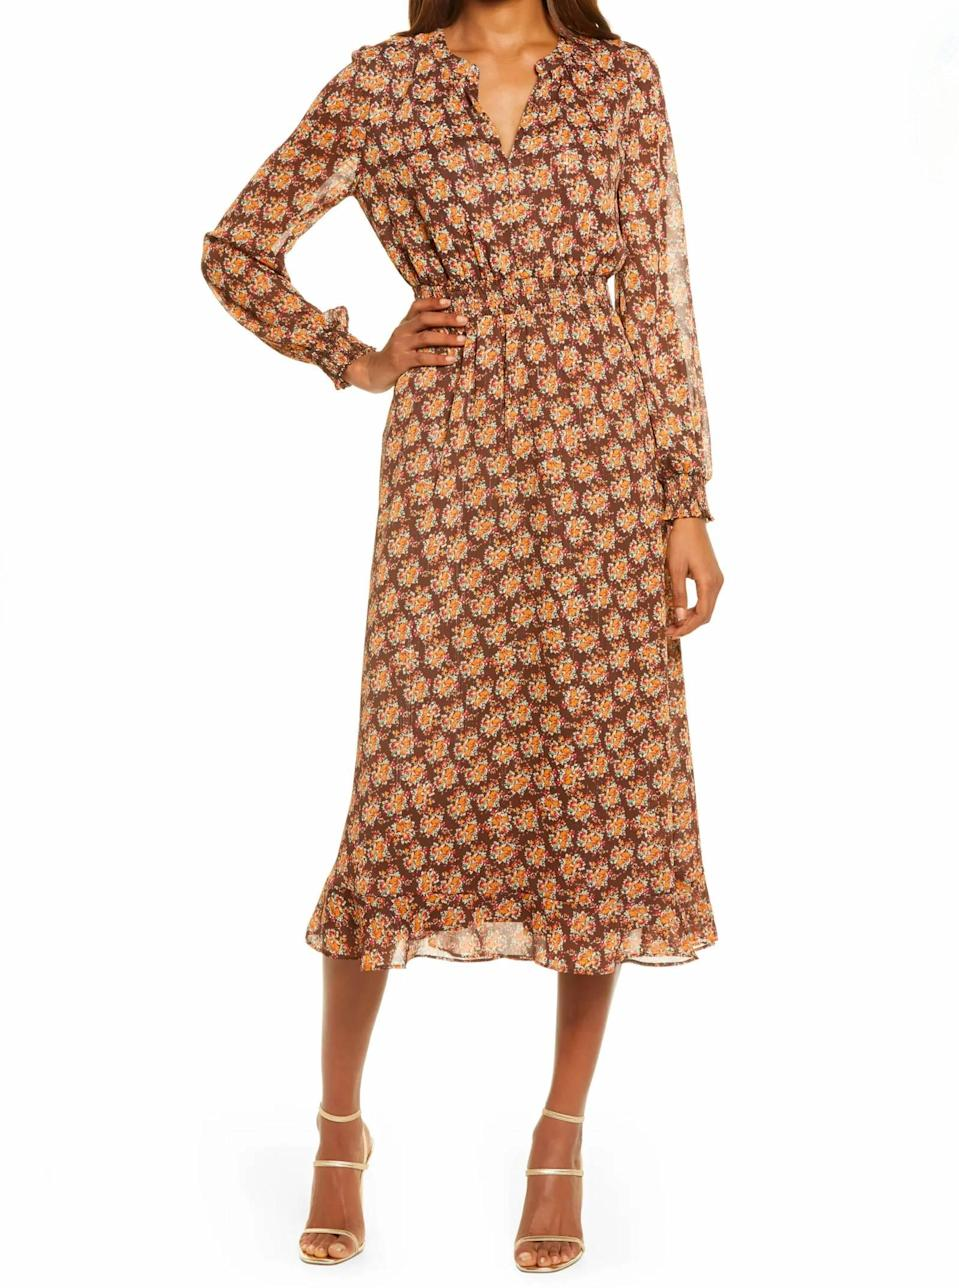 """Timeless, chic, and under $100. What's not to like? $99, Nordstrom. <a href=""""https://www.nordstrom.com/s/charles-henry-floral-long-sleeve-chiffon-midi-dress/5786322"""" rel=""""nofollow noopener"""" target=""""_blank"""" data-ylk=""""slk:Get it now!"""" class=""""link rapid-noclick-resp"""">Get it now!</a>"""